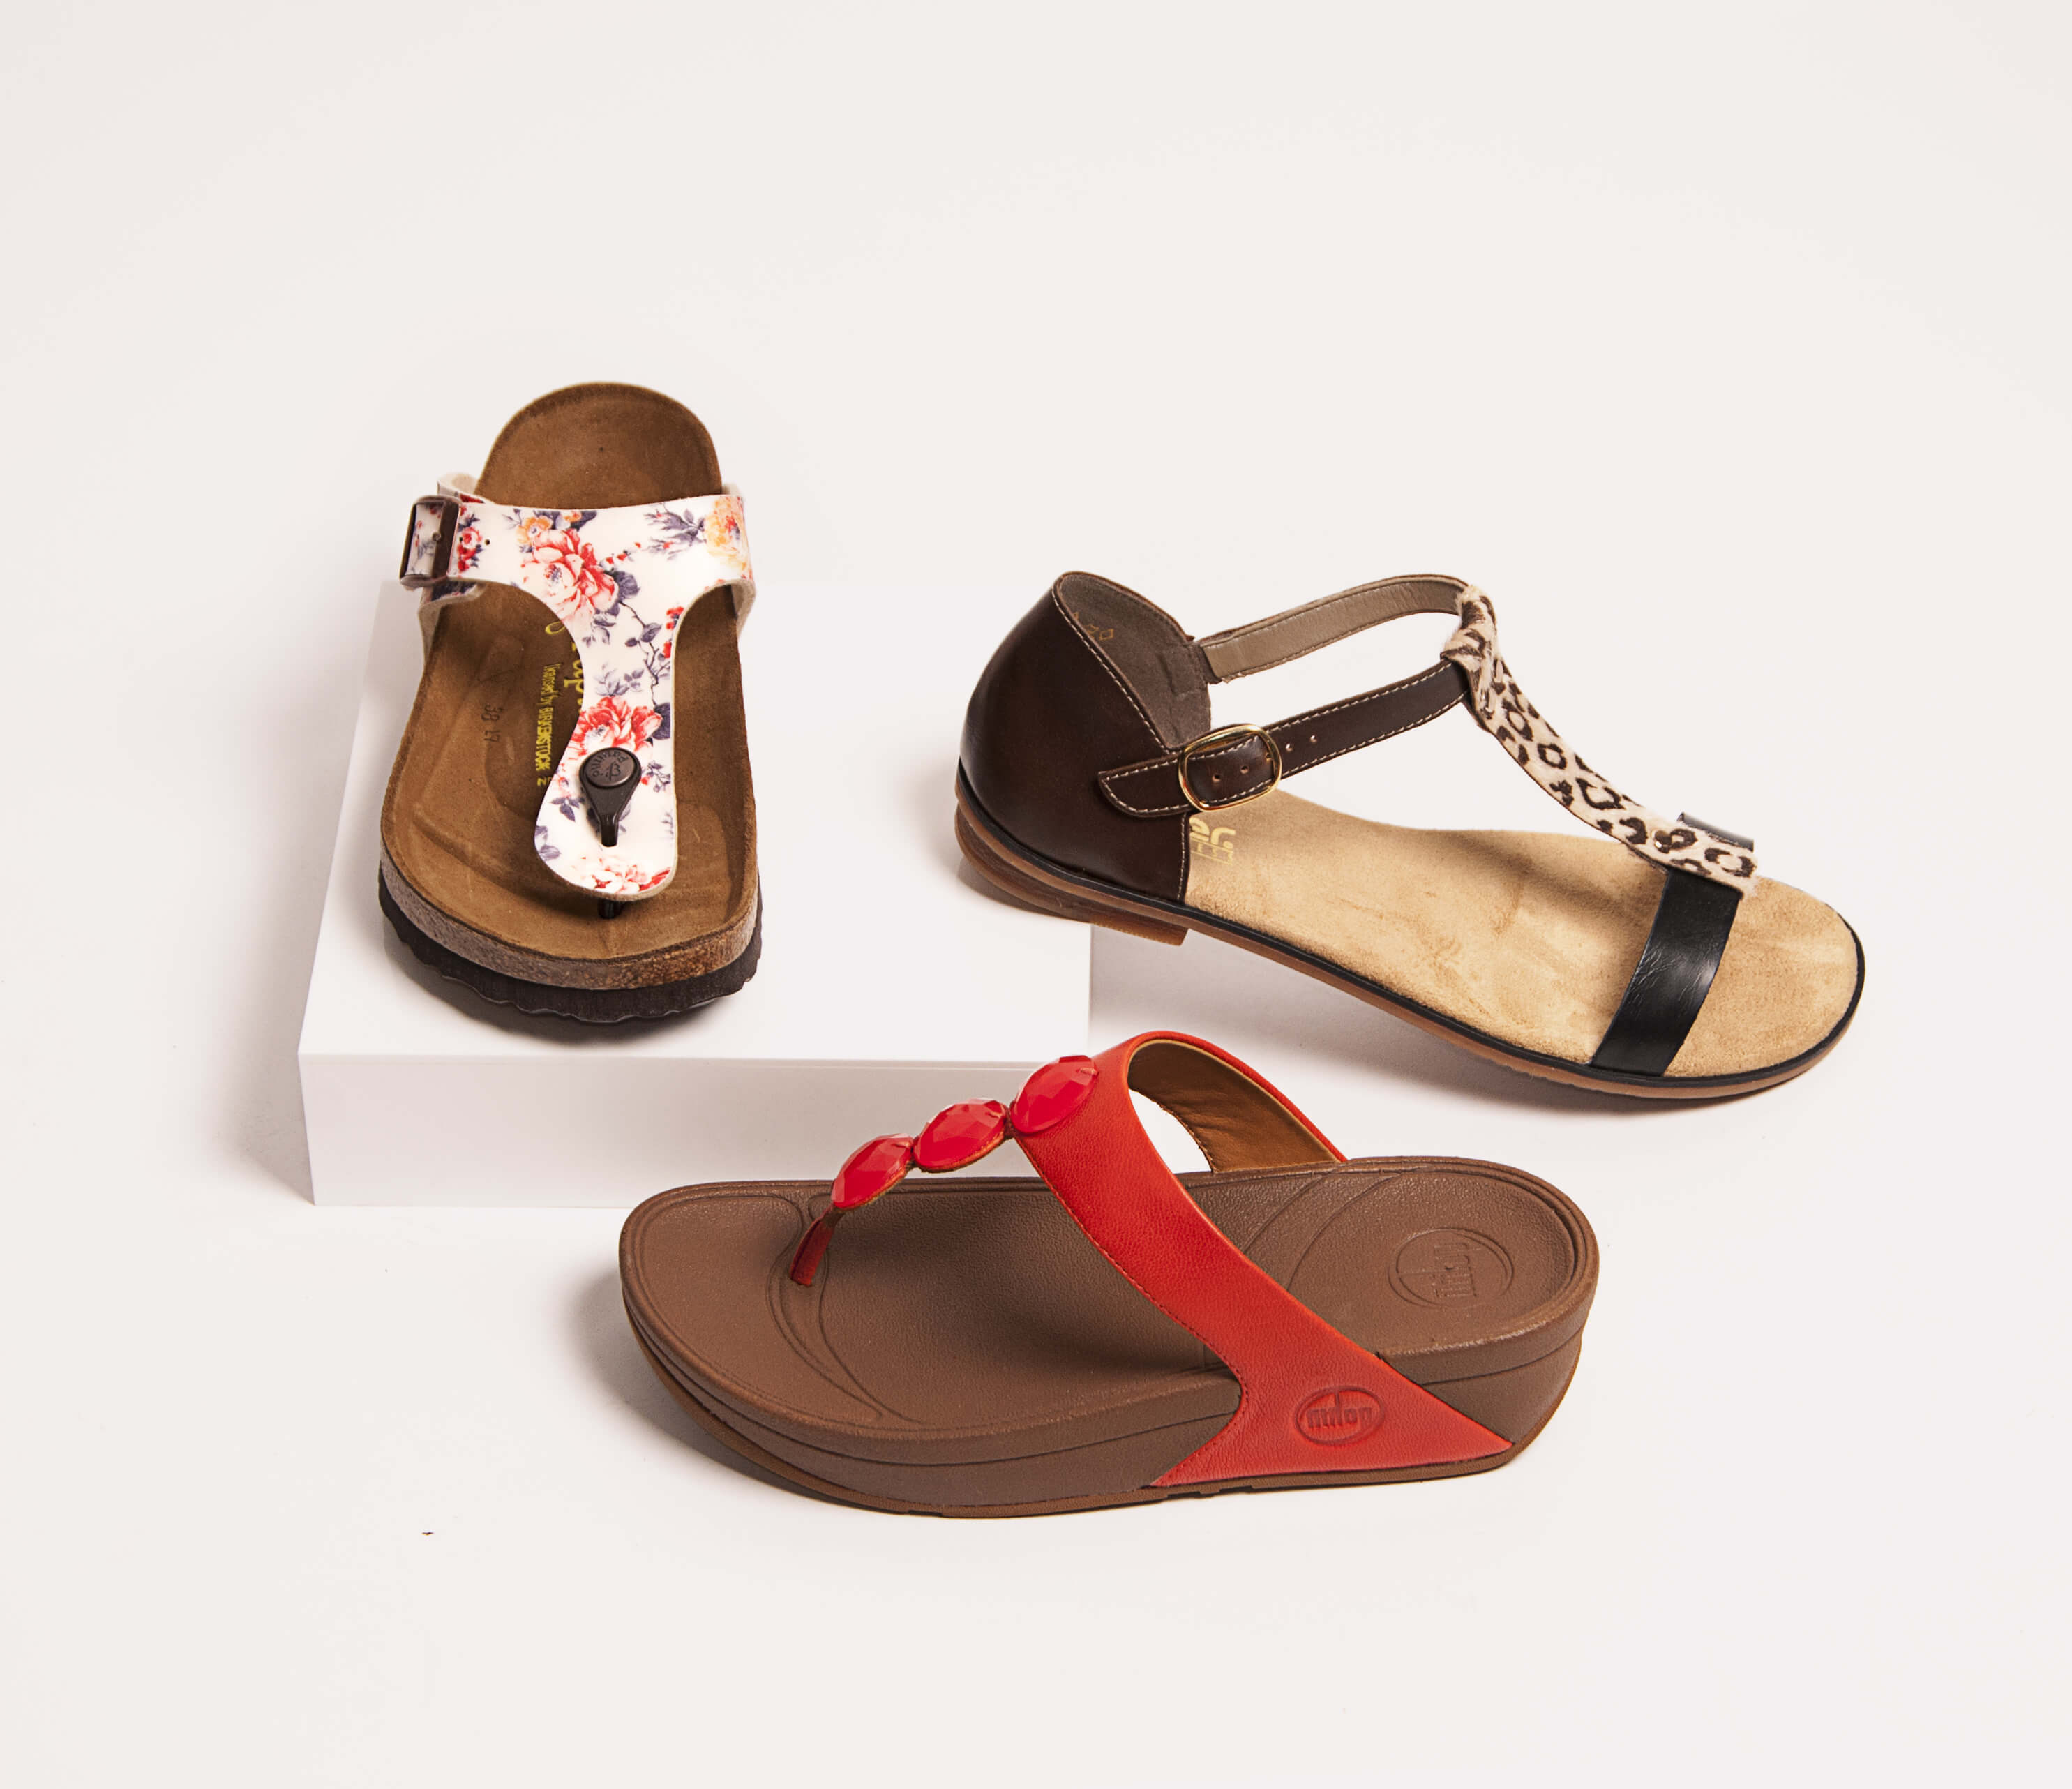 Shop the Summer Sandals Sale at Charles Clinkard